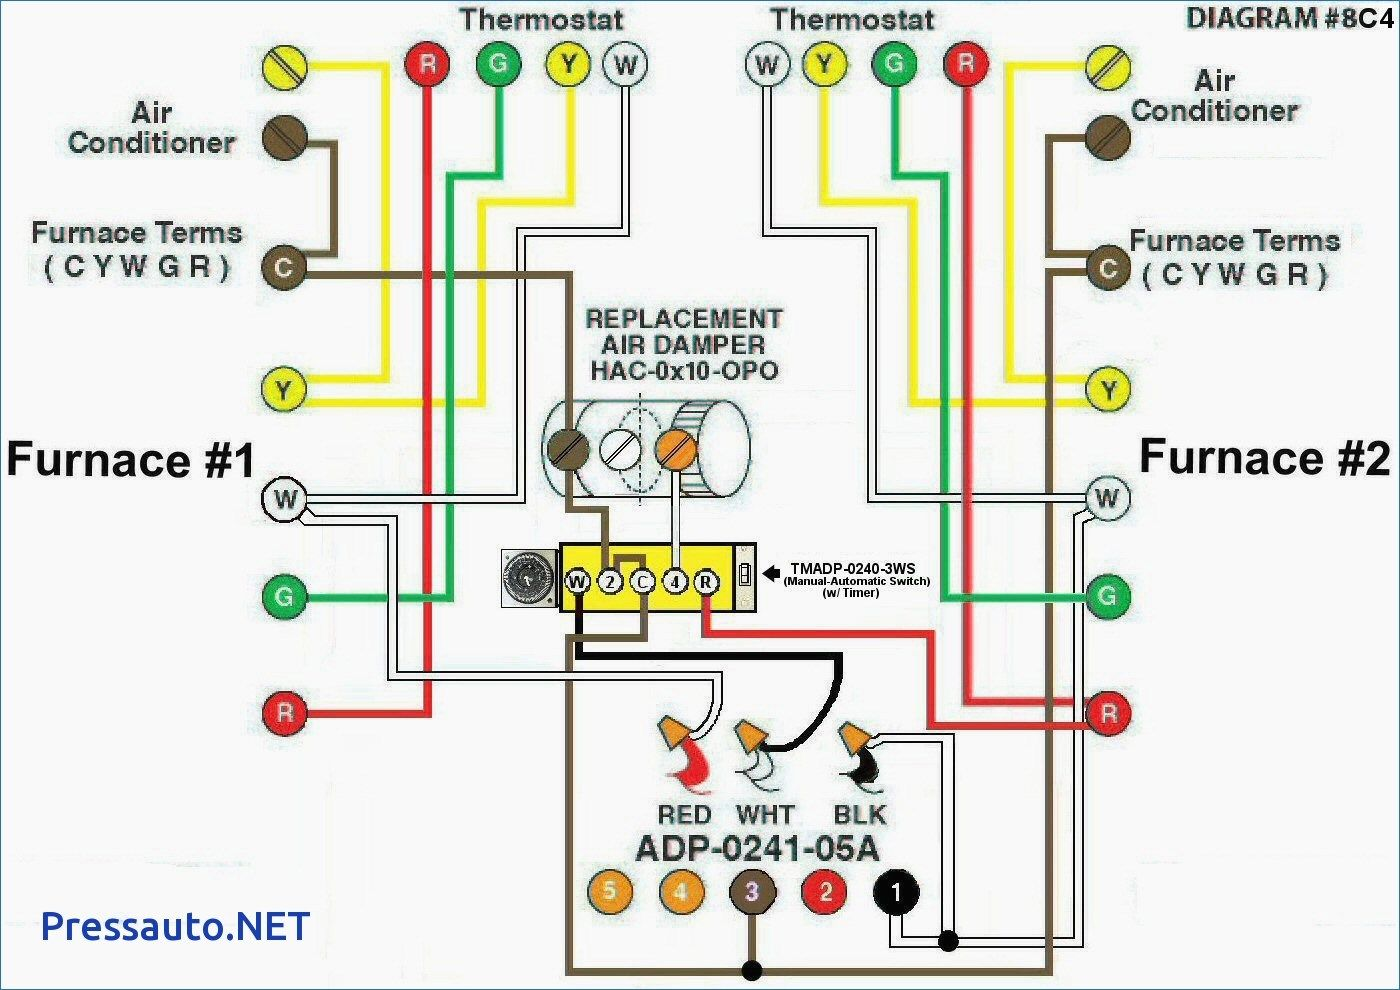 Unique Lennox Furnace Thermostat Wiring Diagram 22 On 12 Volt Within New |  Thermostat wiring, Thermostat, Refrigeration and air conditioningPinterest